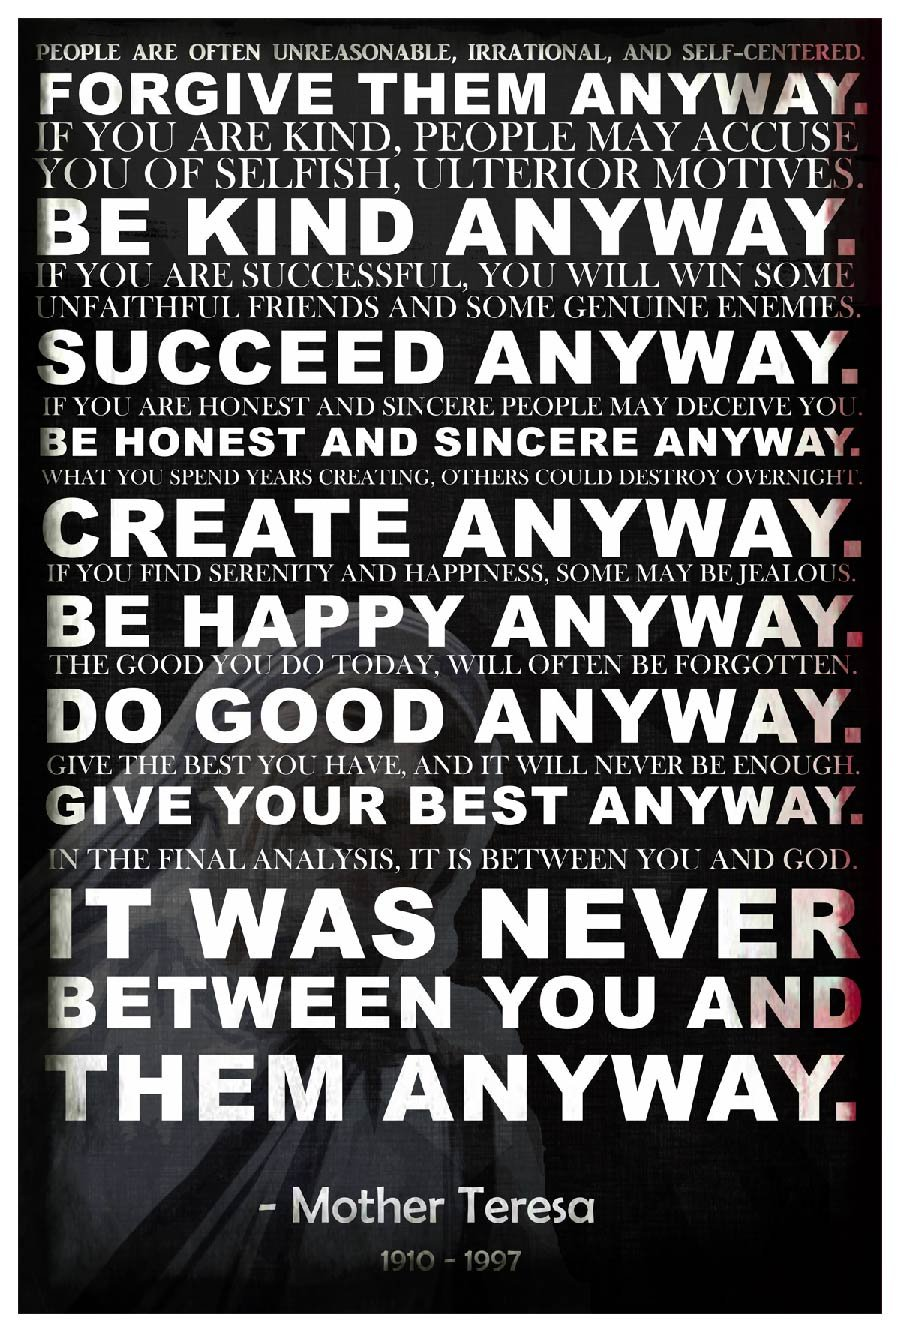 Mother Teresa Anyway Quote Poster   18-Inches By 12-Inches   Premium 100lb...